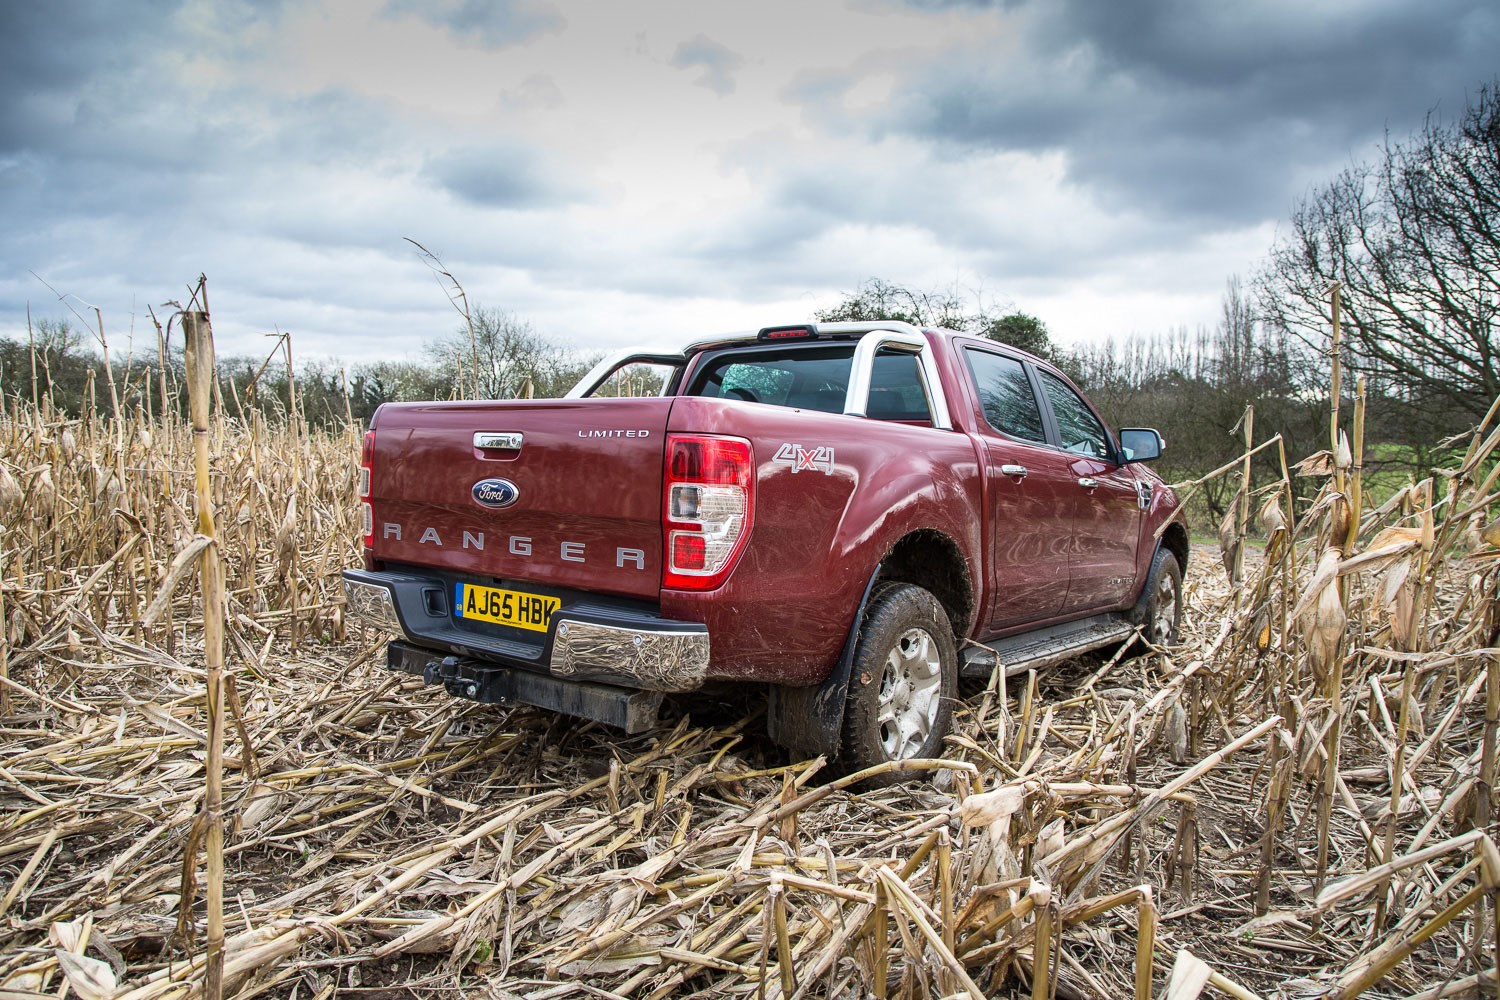 Ford Ranger review - 2016 facelitt, rear view, parked in field of crops, dark red